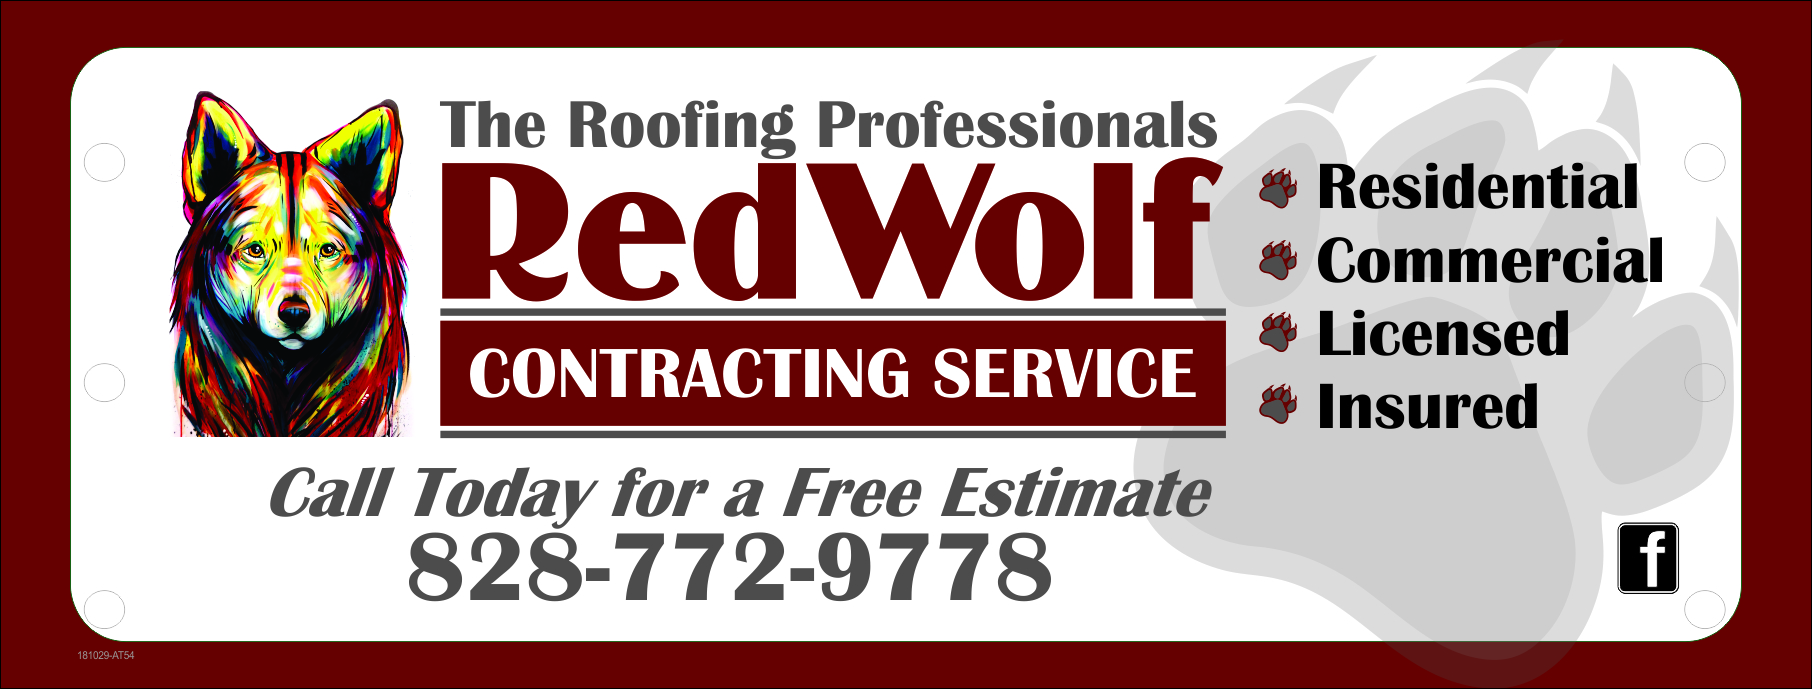 Contact my local trusted roofing source Matt at RedWolf Contracting Services to take care of all of your roof replacements. From shingles, to metal roofing, and even commercial rubber membrane, Matt has the resources and solutions to take care of your job in a professional and cost effective manner. Call (828) 772-9778 or visit  nc-roofers.com  to set up your free roof inspection.